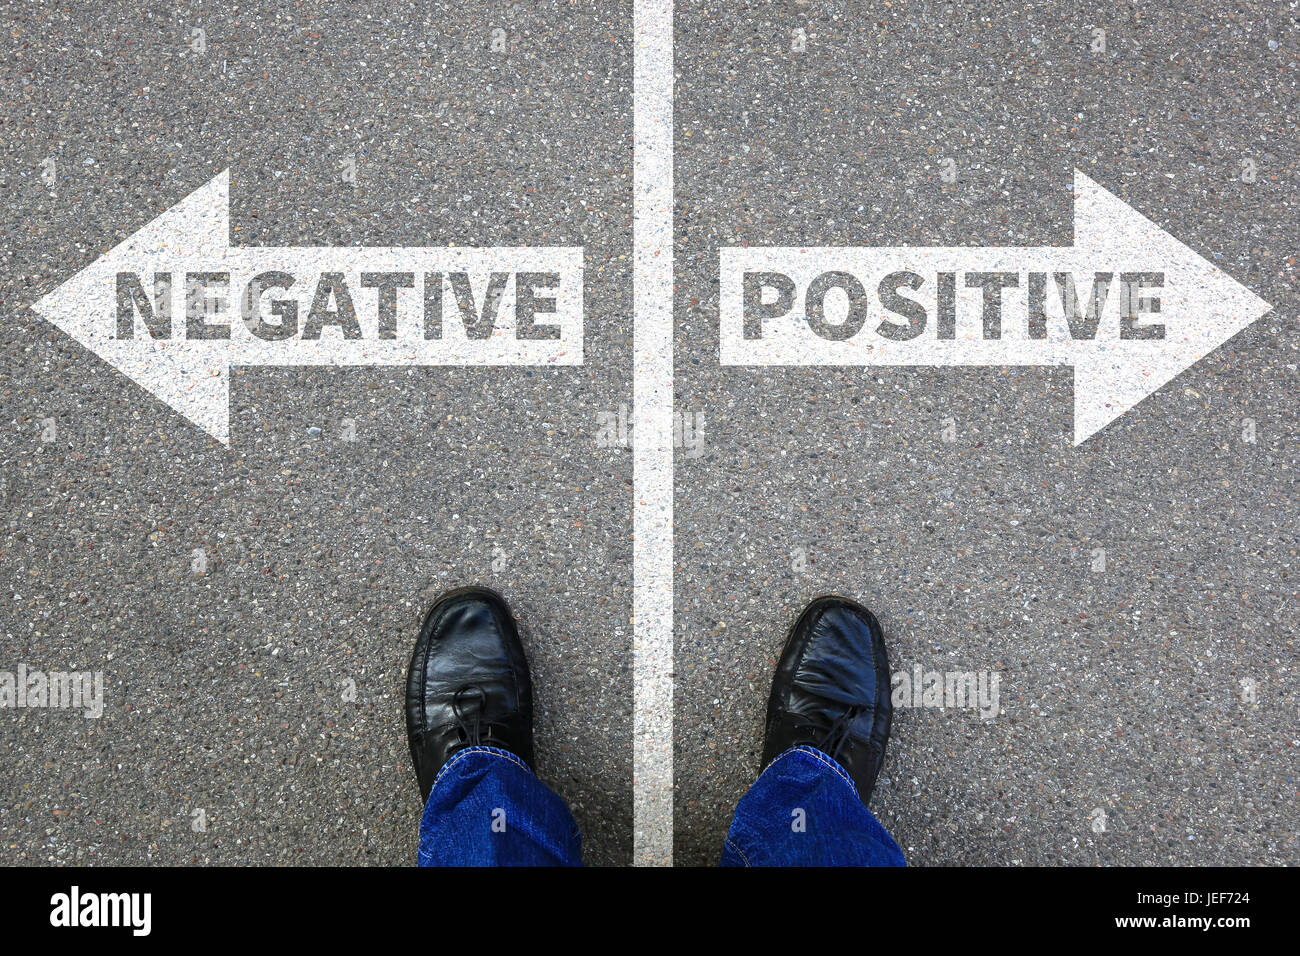 Negative positive thinking good bad thoughts attitude business concept solution decision decide choice - Stock Image